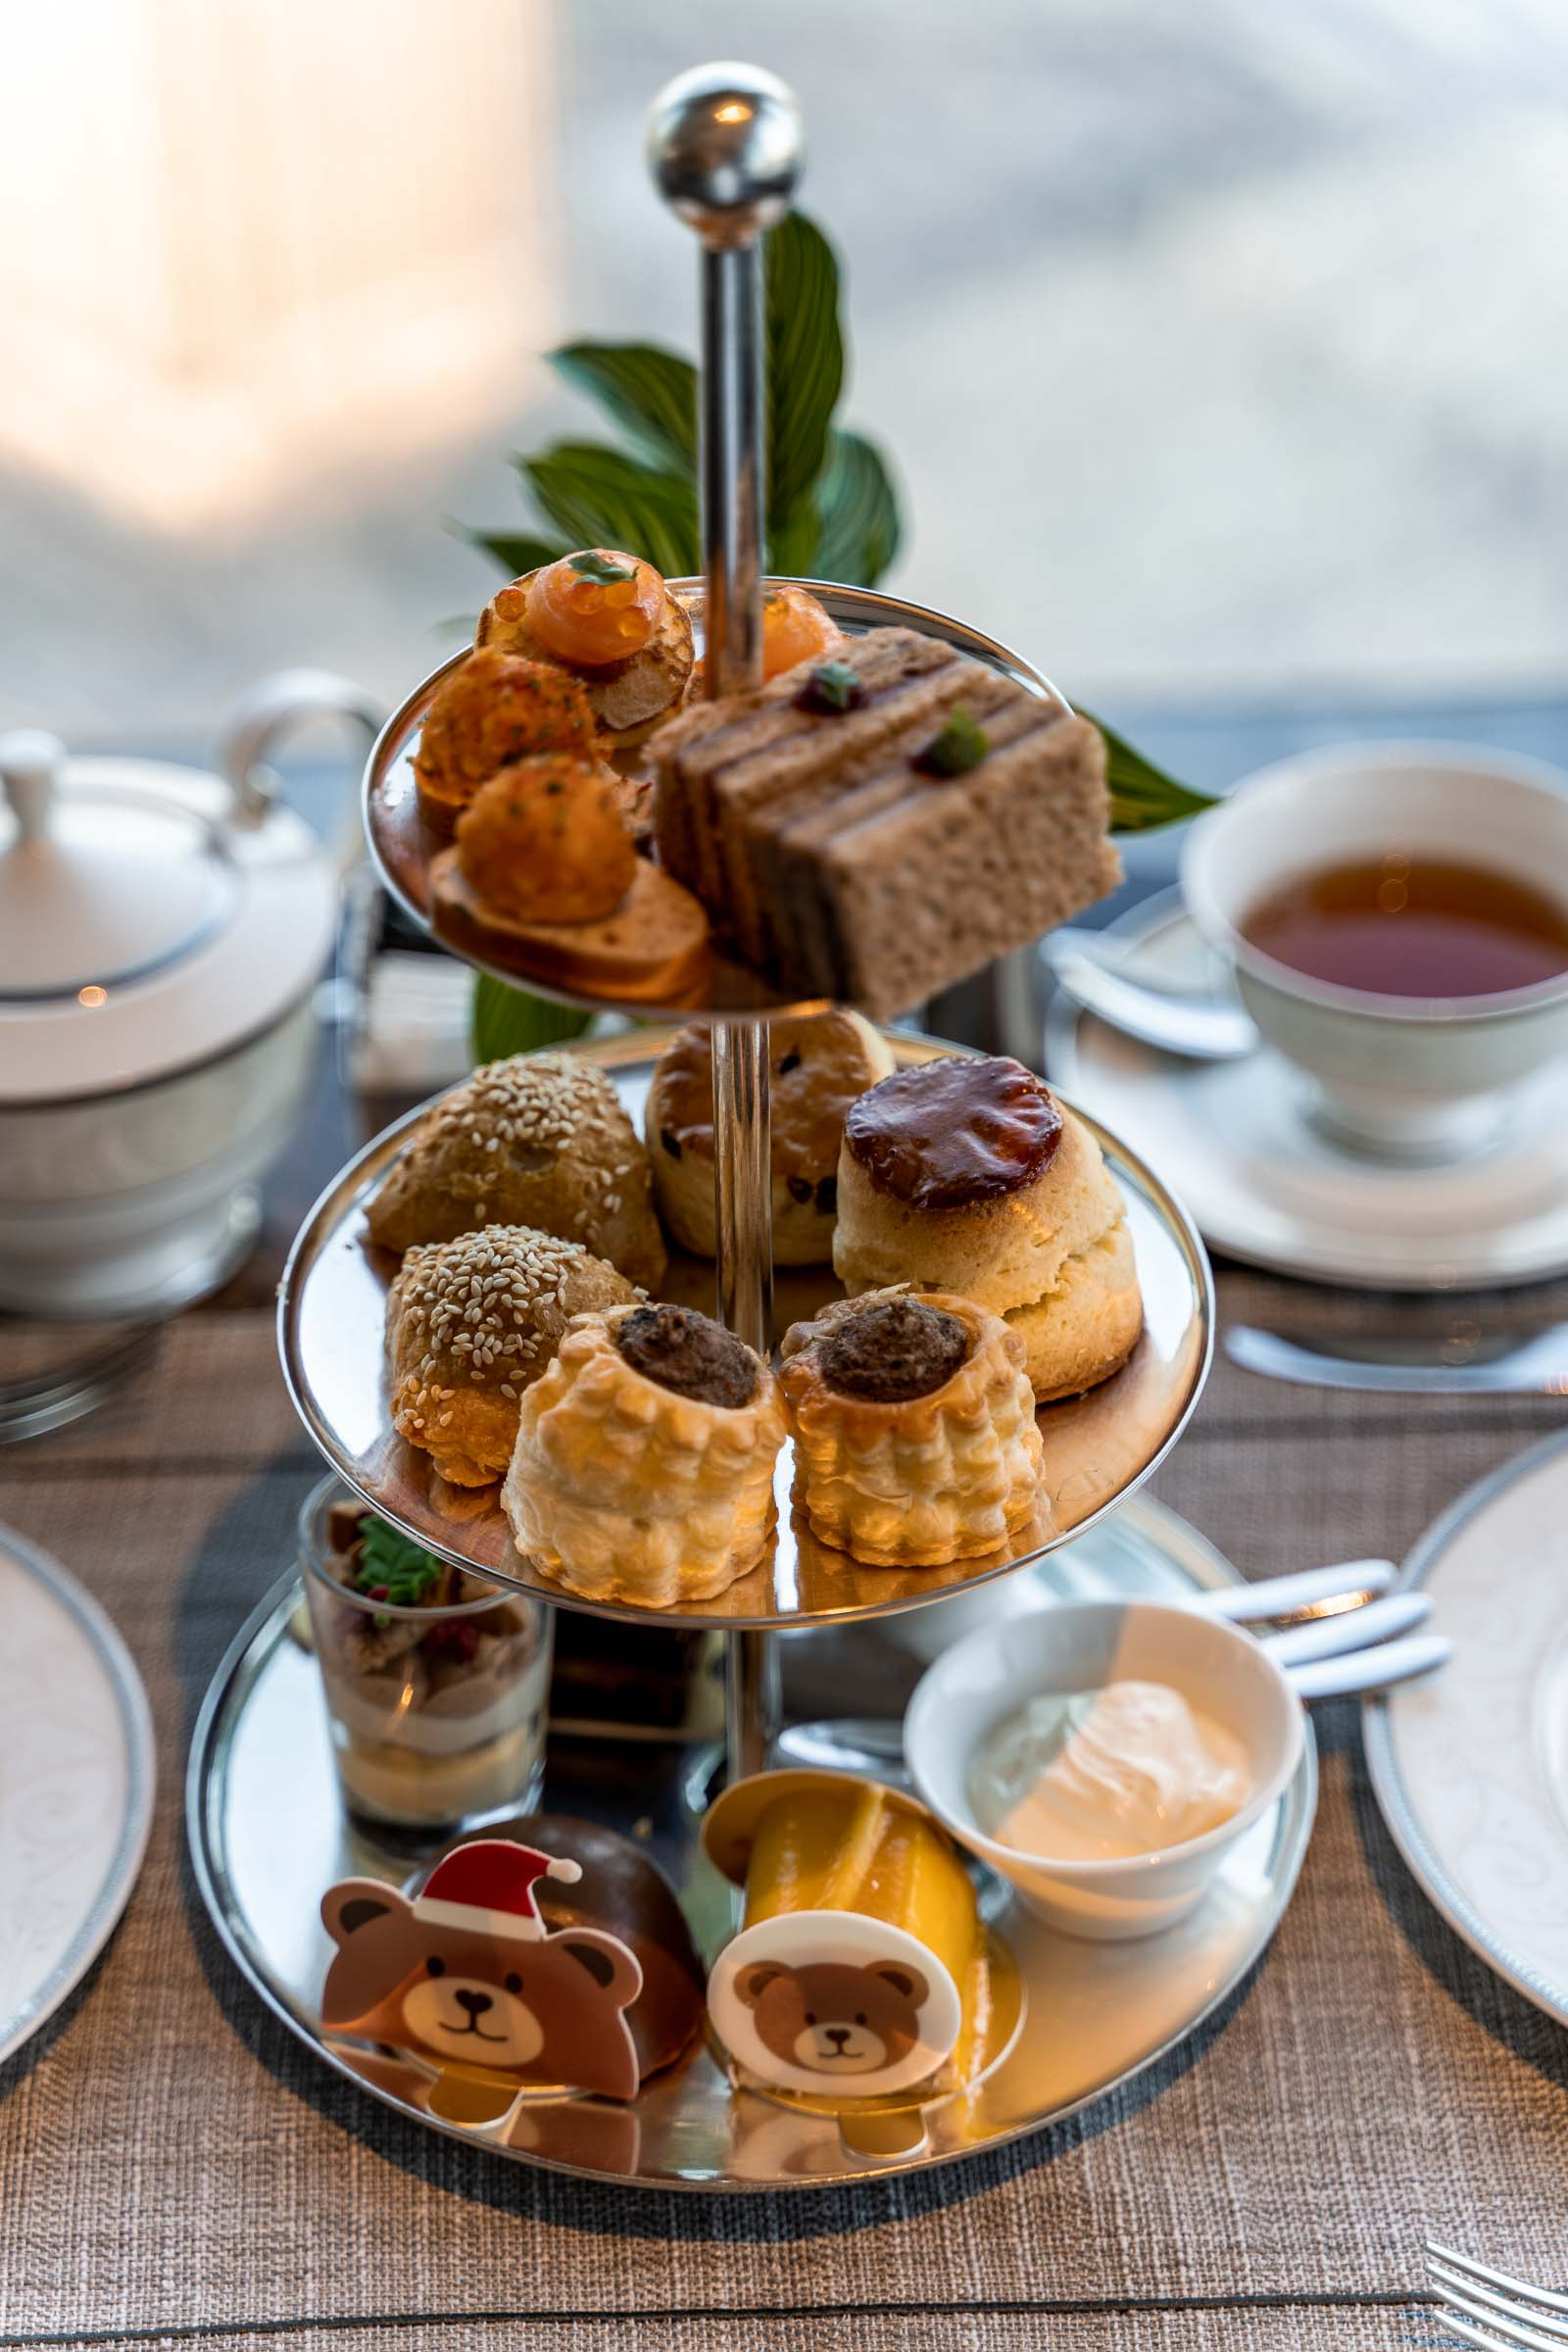 Afternoon tea with pastries and desserts